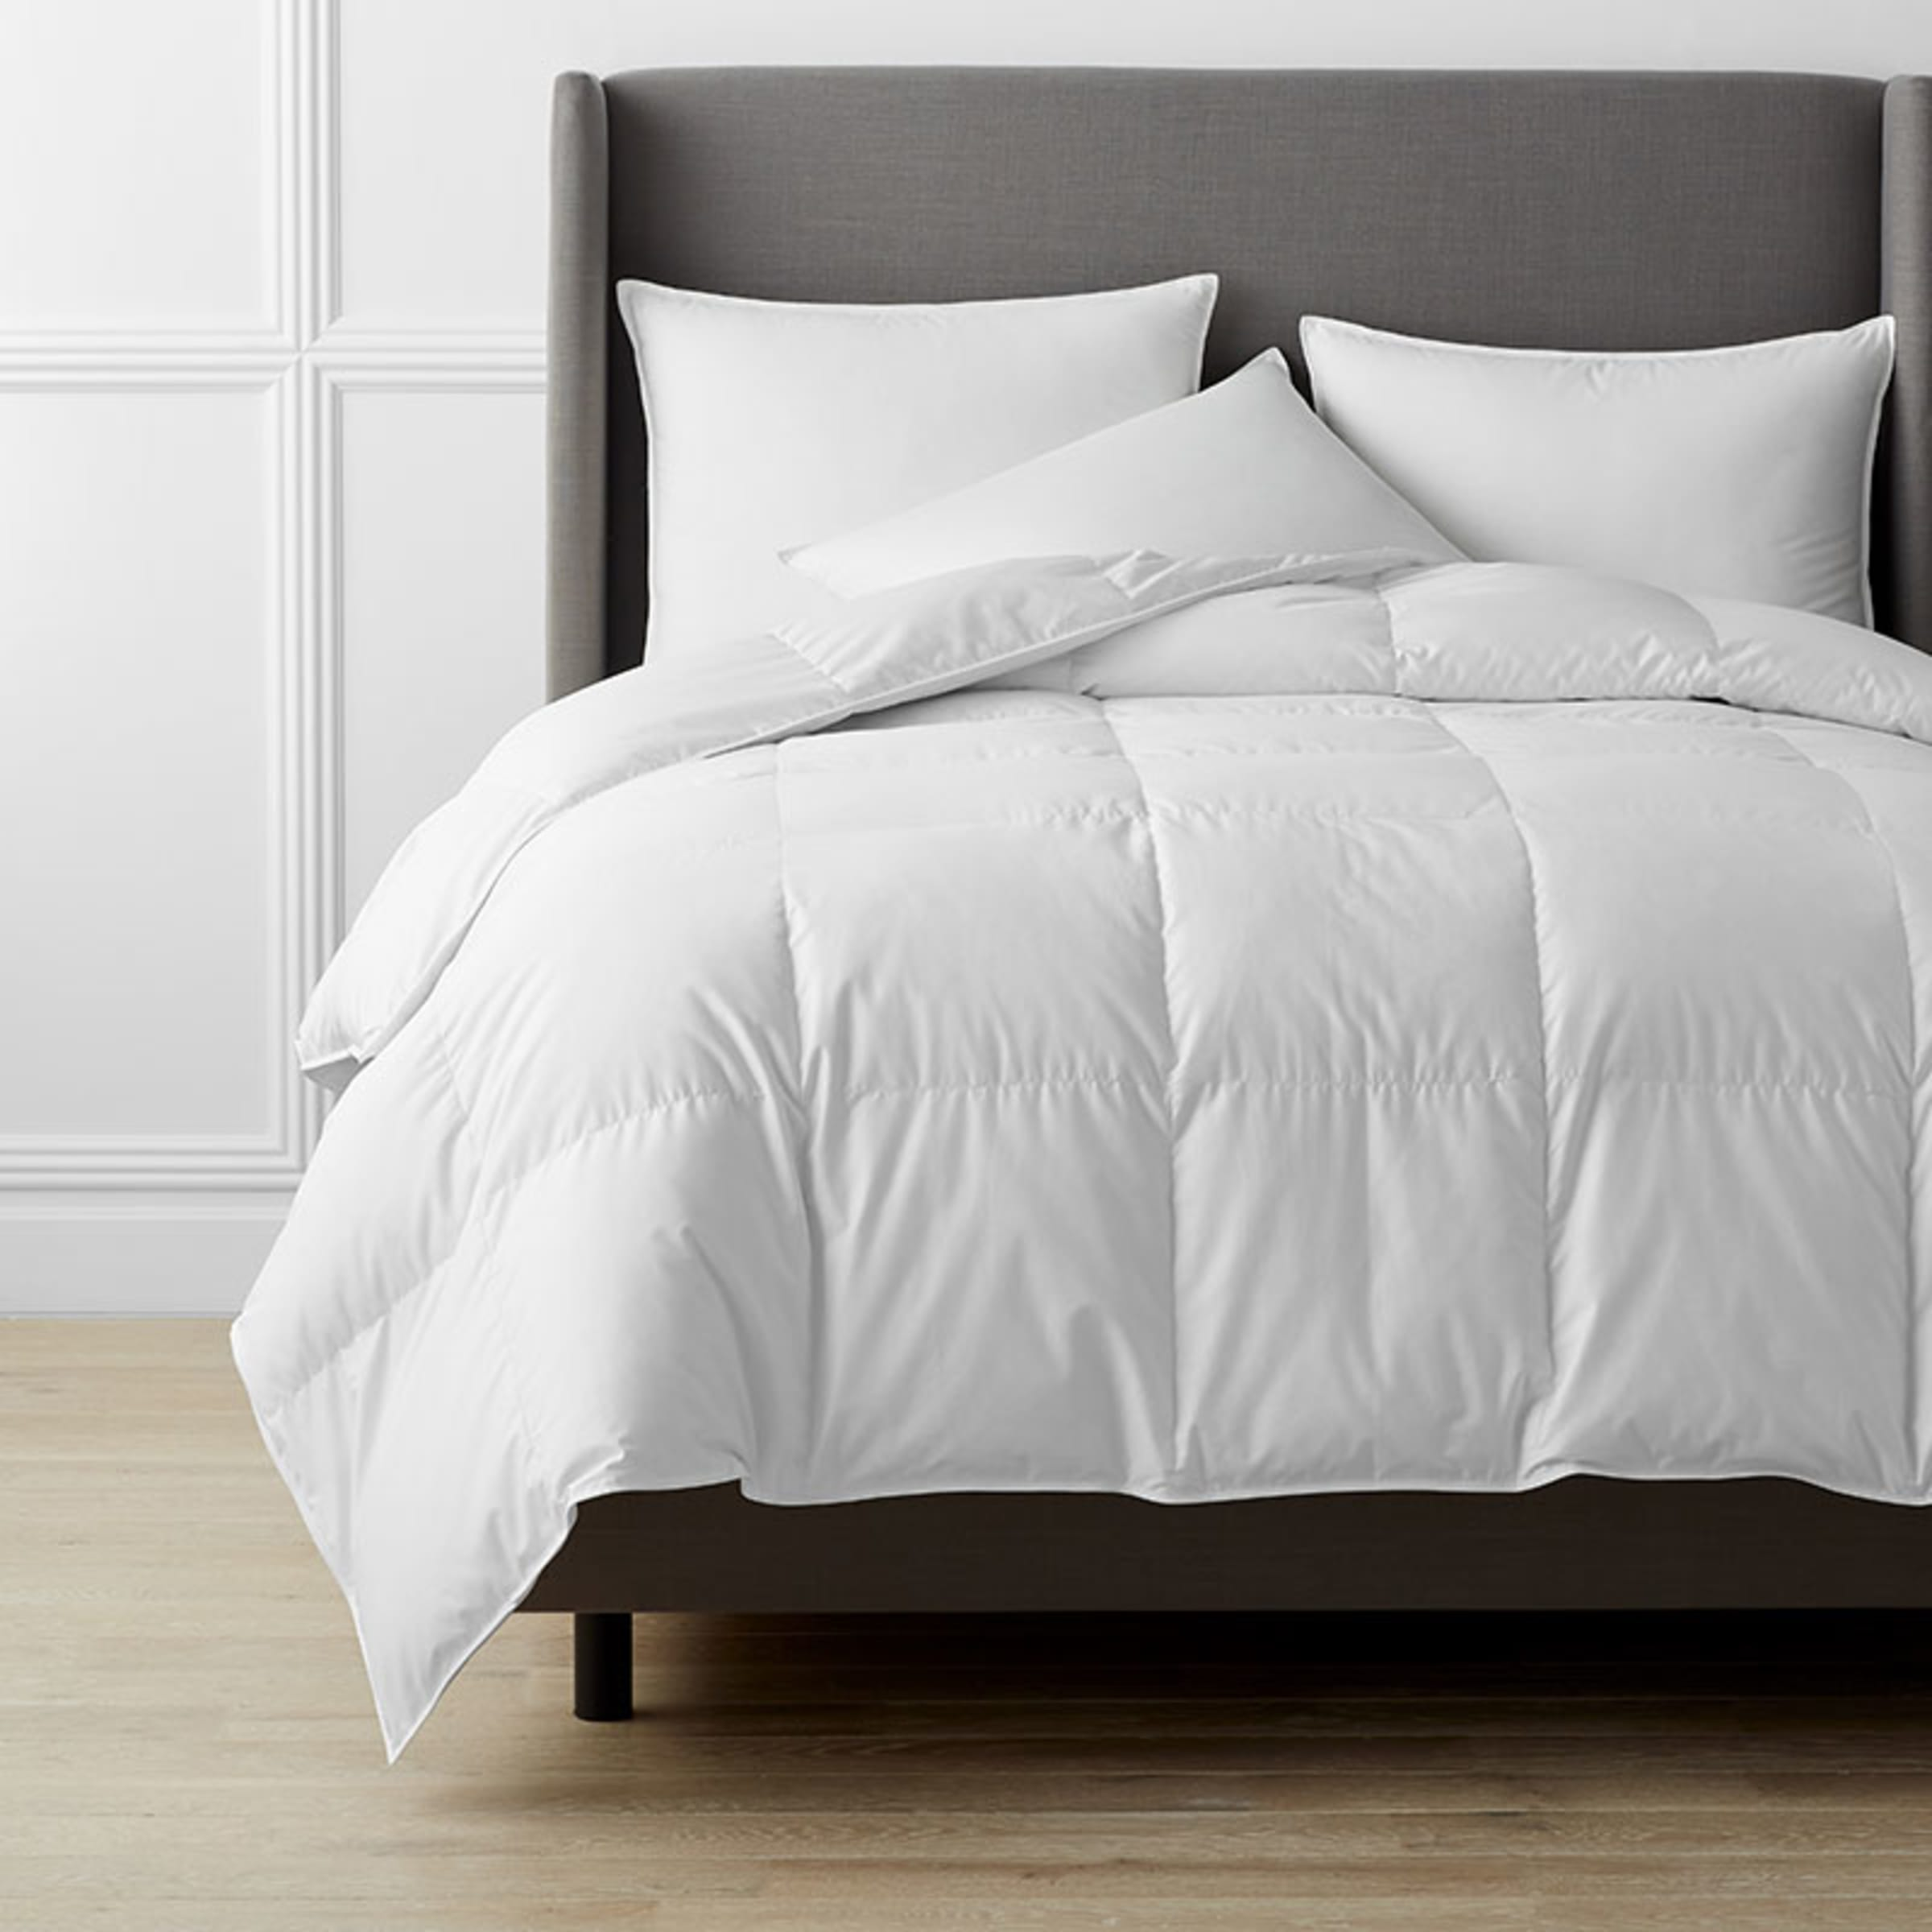 White Bay Rds Certified European Down Comforter